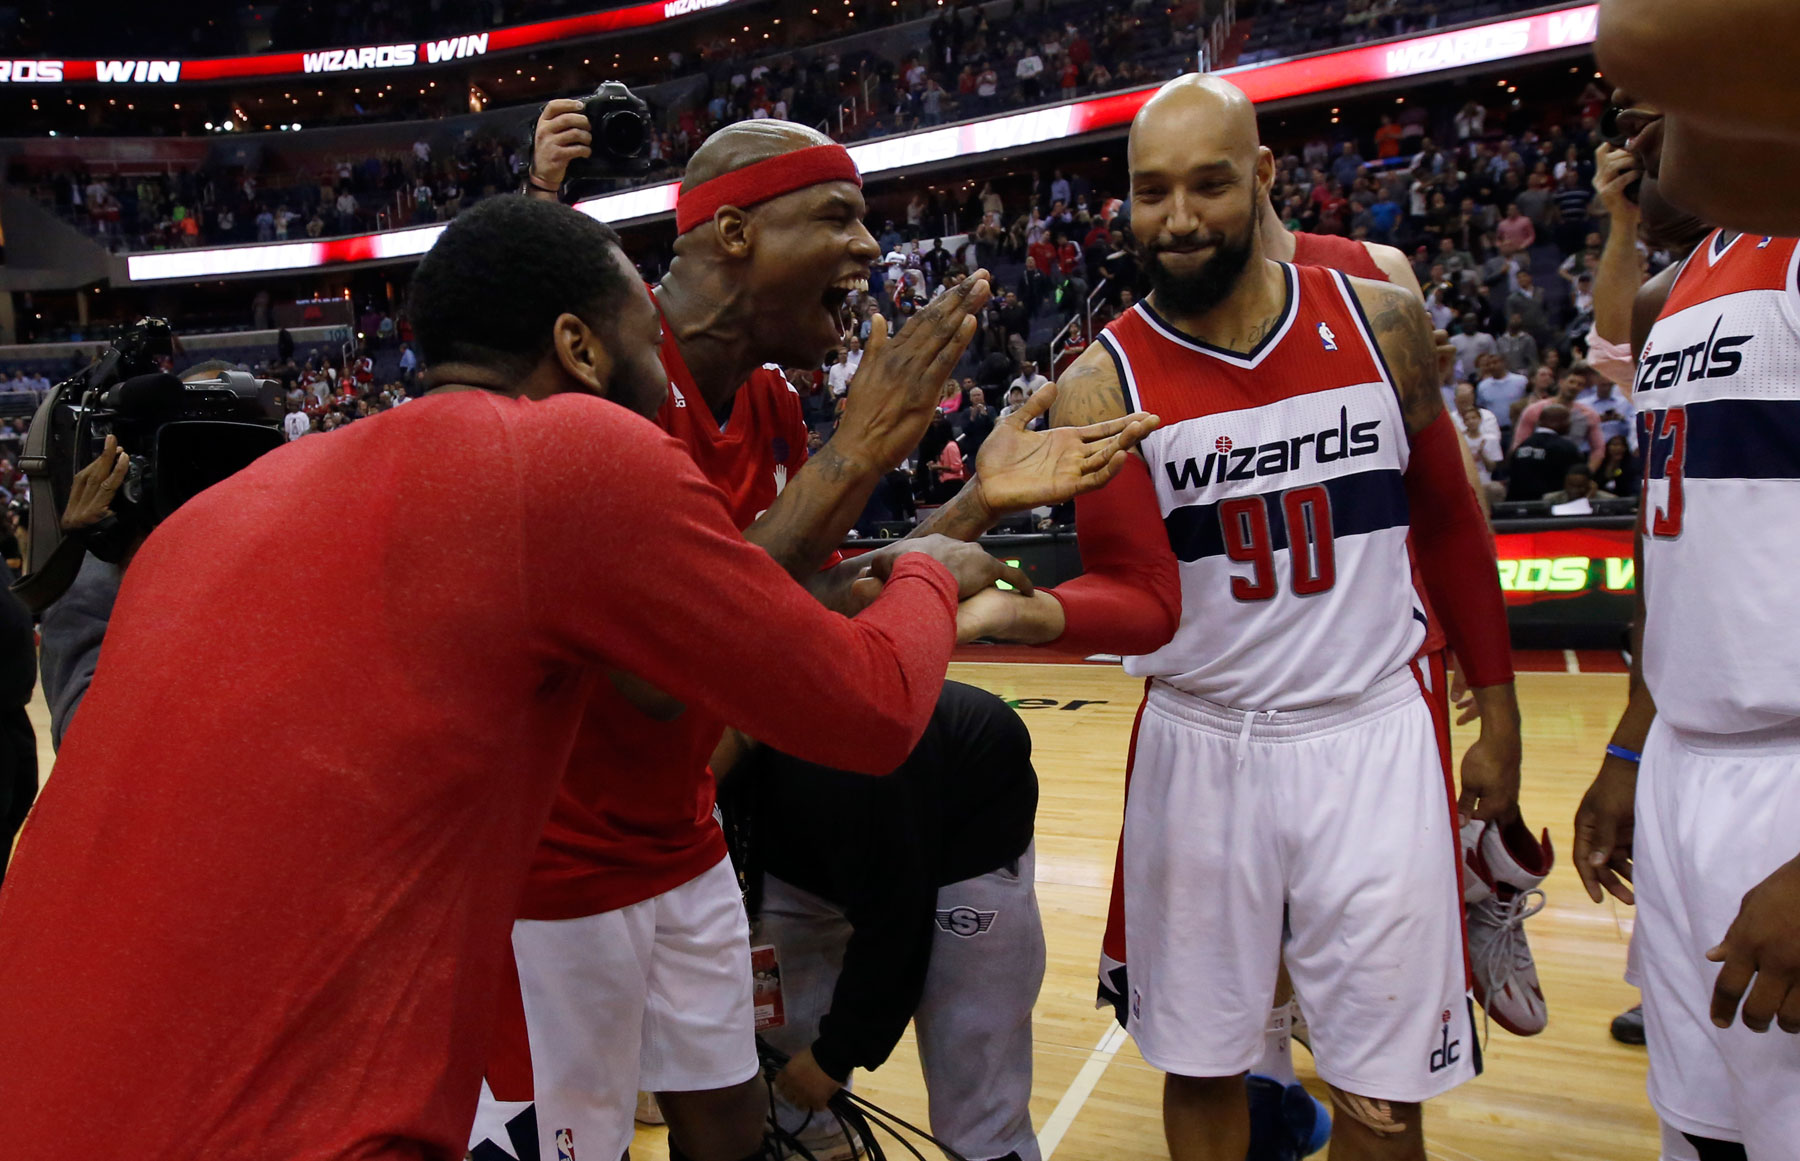 As Wizards return home, they want more